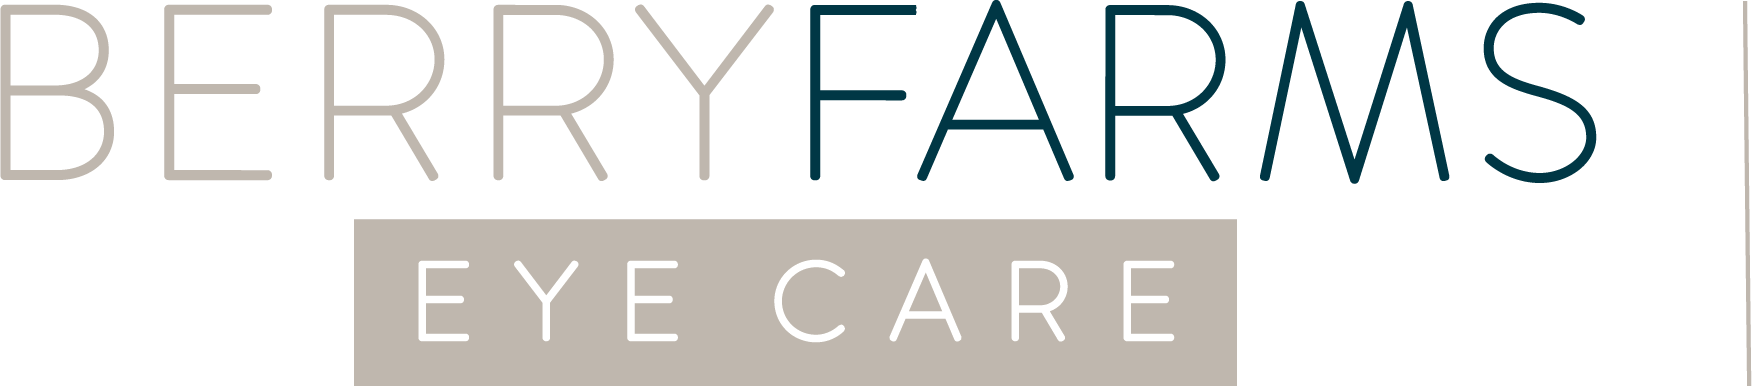 Berry Farms Eyecare Franklin Tennessee Tn